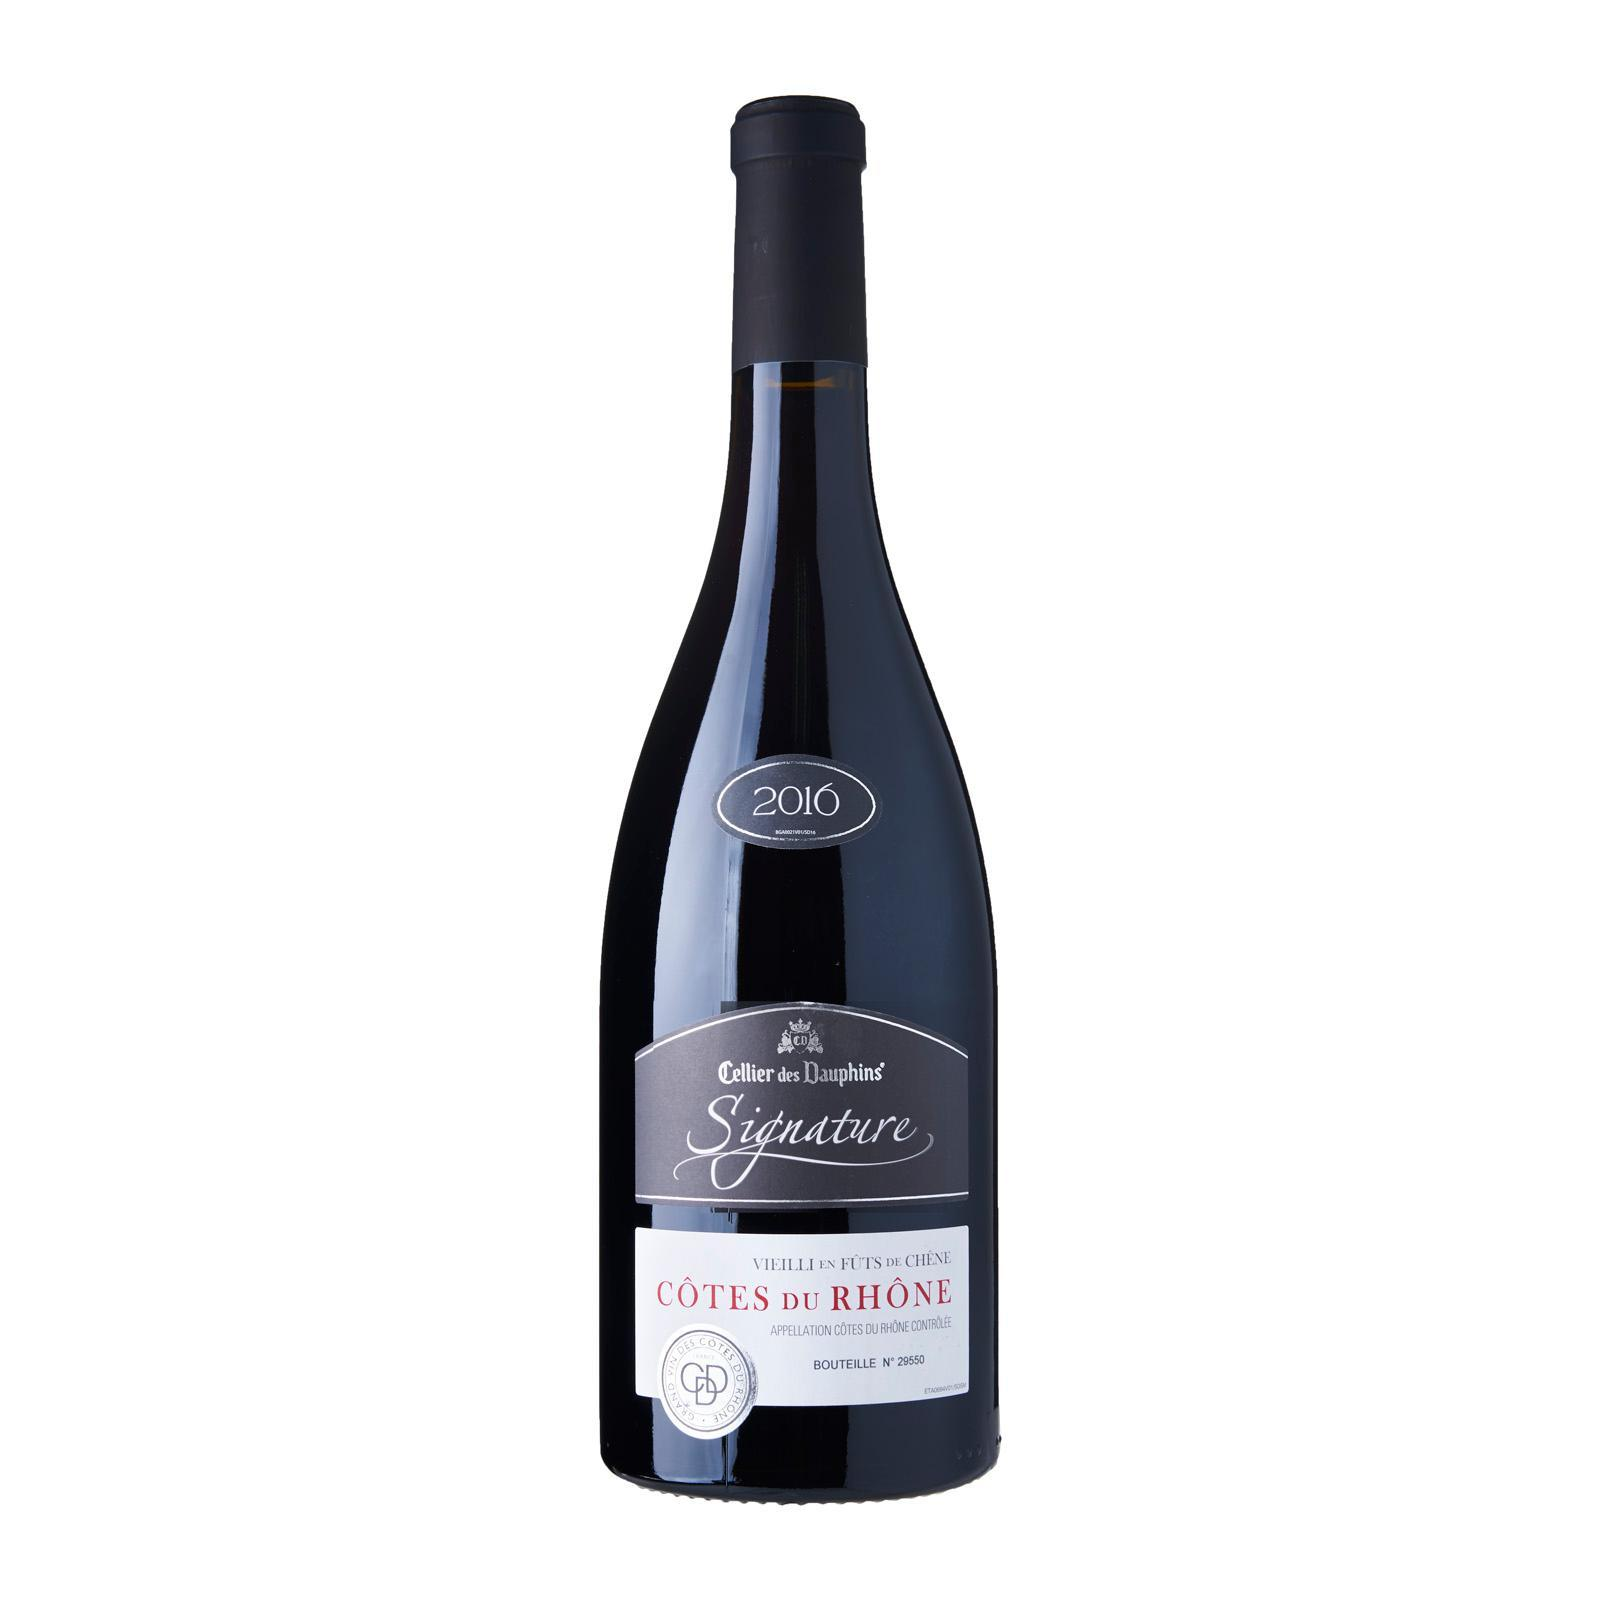 Cellier des Dauphines Signature Cotes Du Rhone Rouge Red Wine